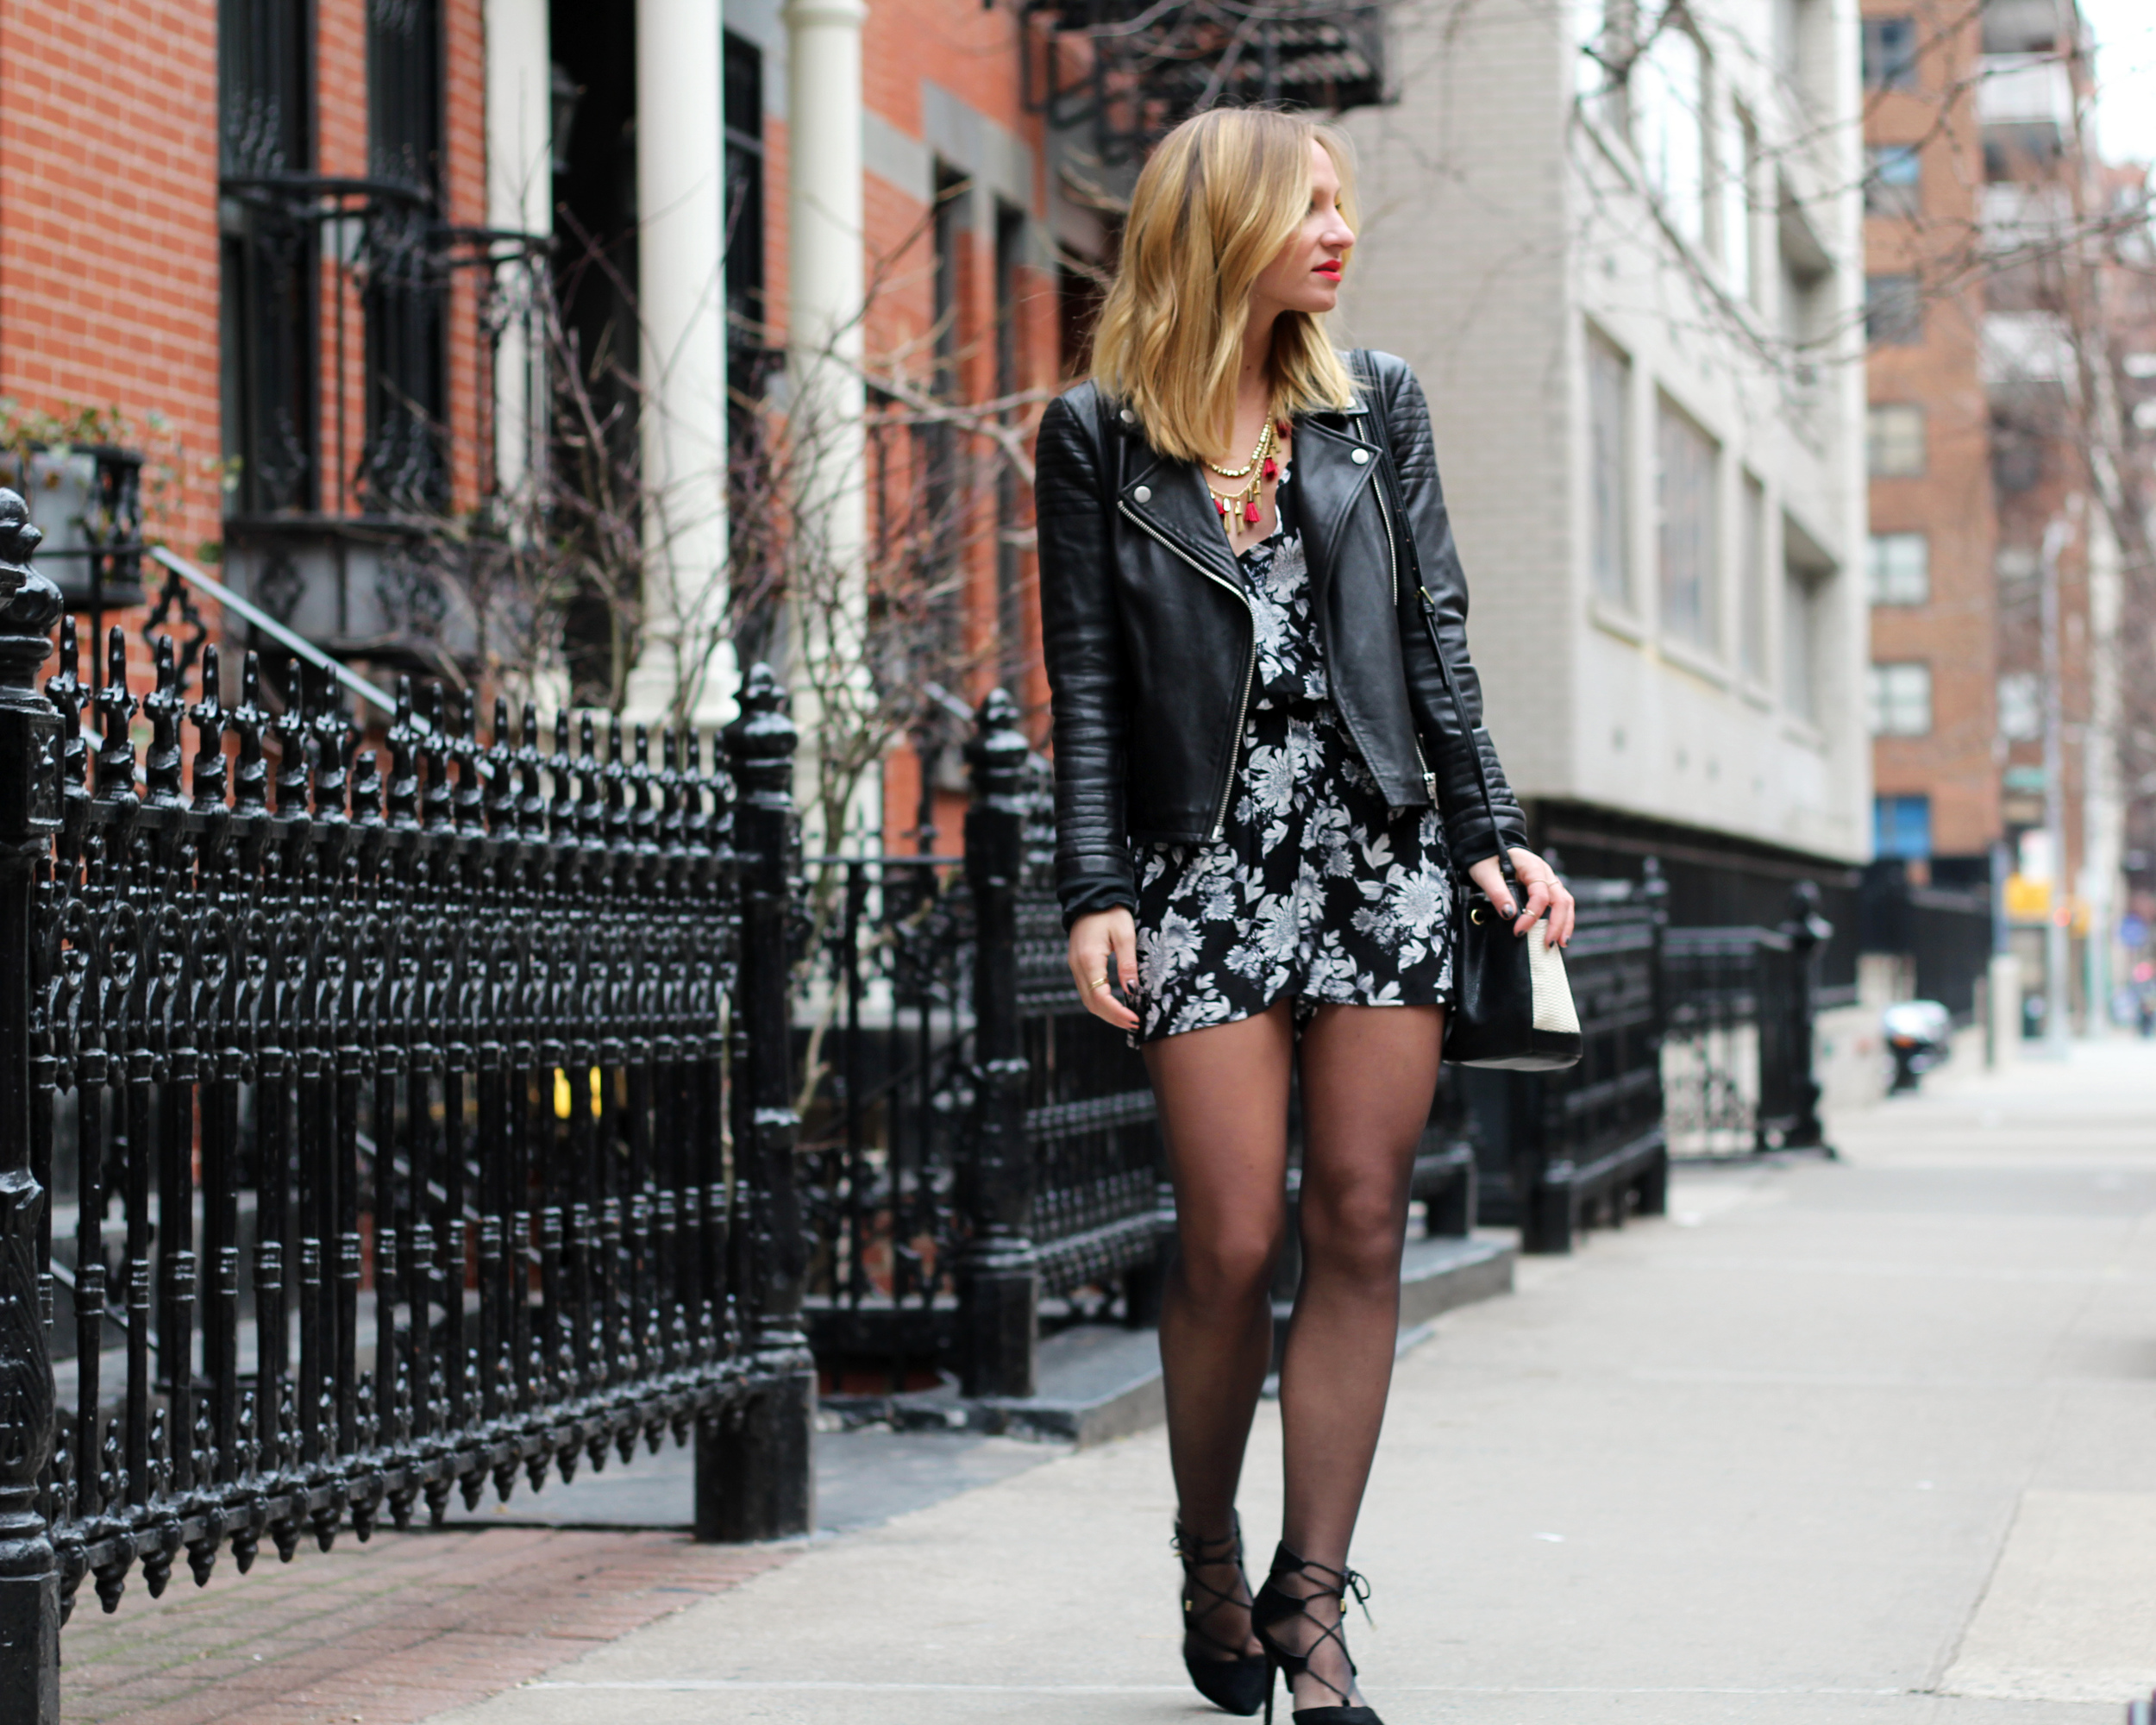 valentines day outfit ideas date night looks black tights with romper look topshop lace-up shoe